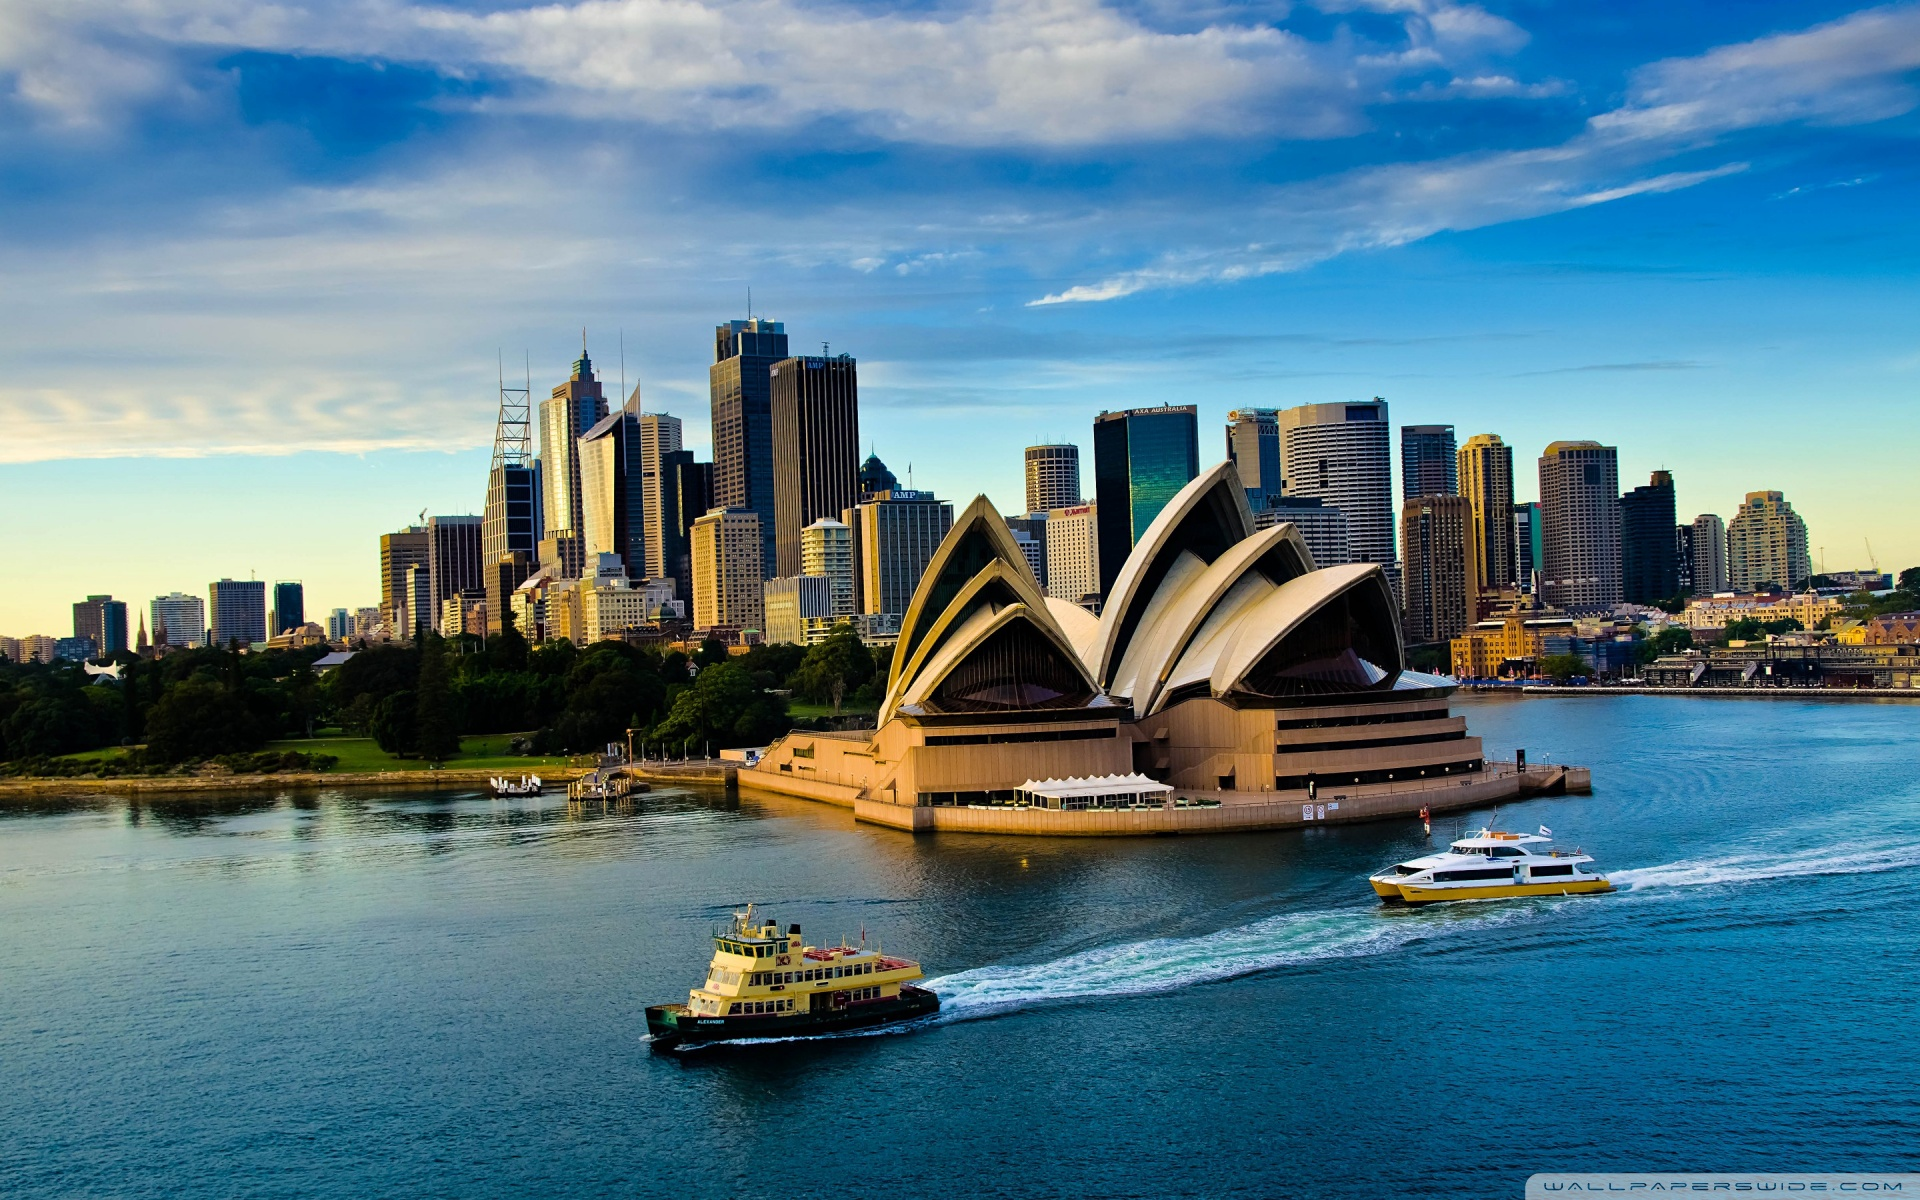 sydney_opera_house_australia_2-wallpaper-1920x1200